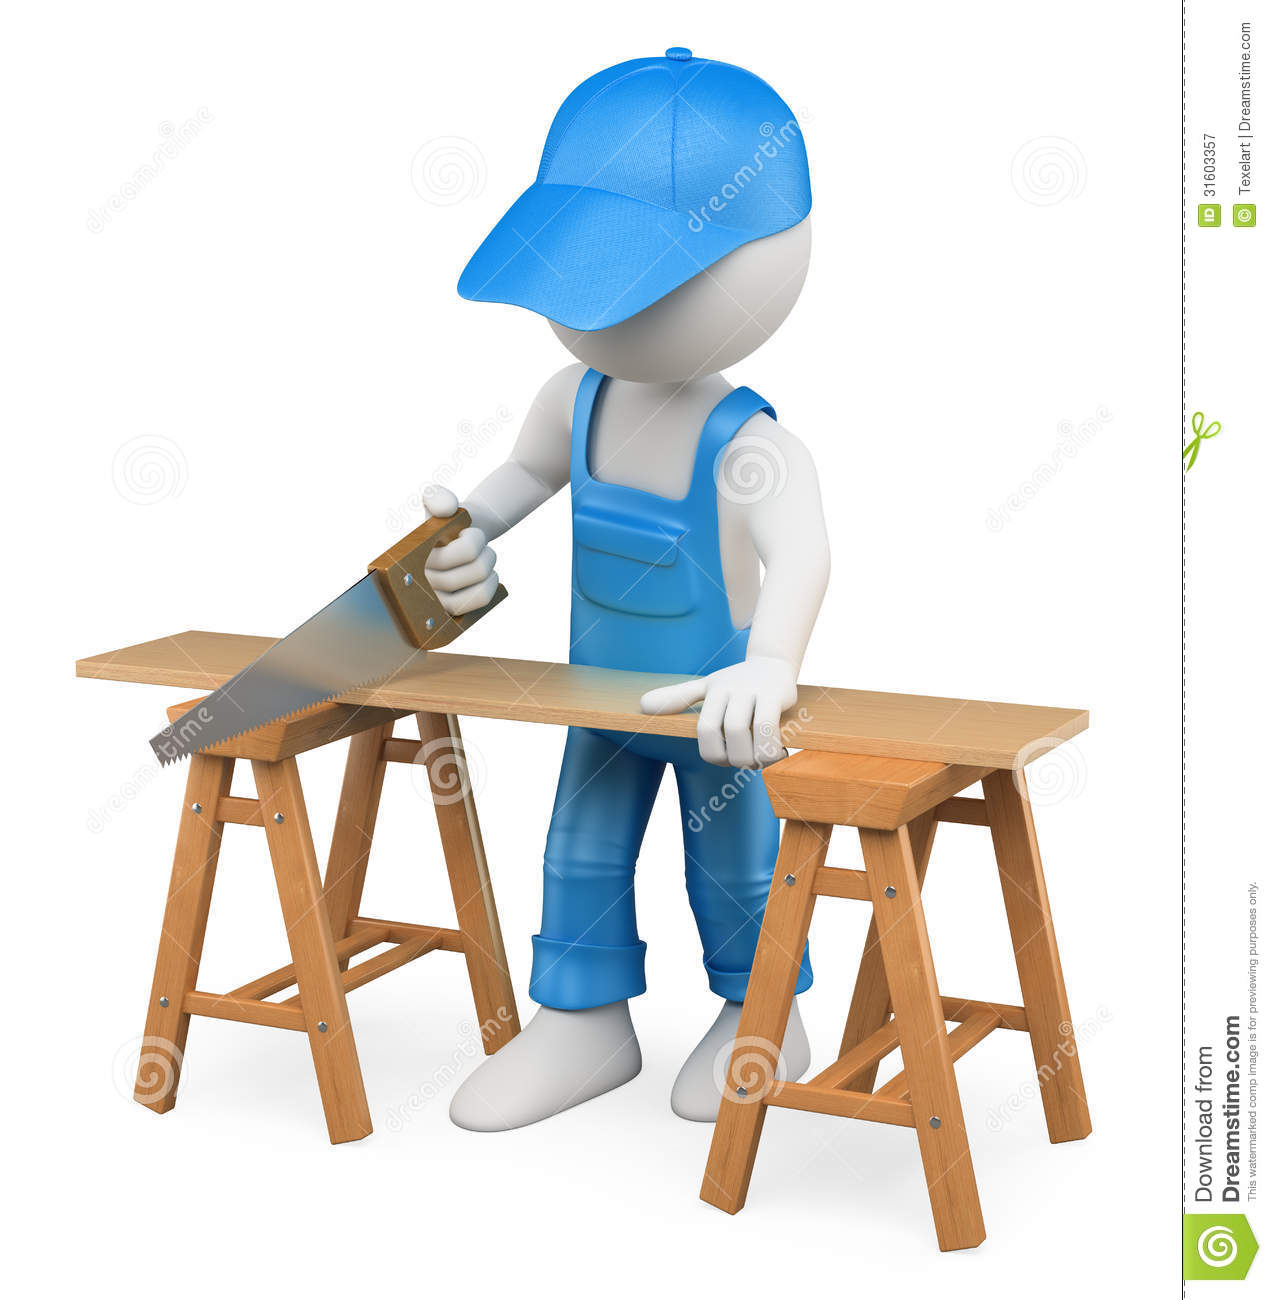 d white people carpenter cutting wood handsaw person background 31603357